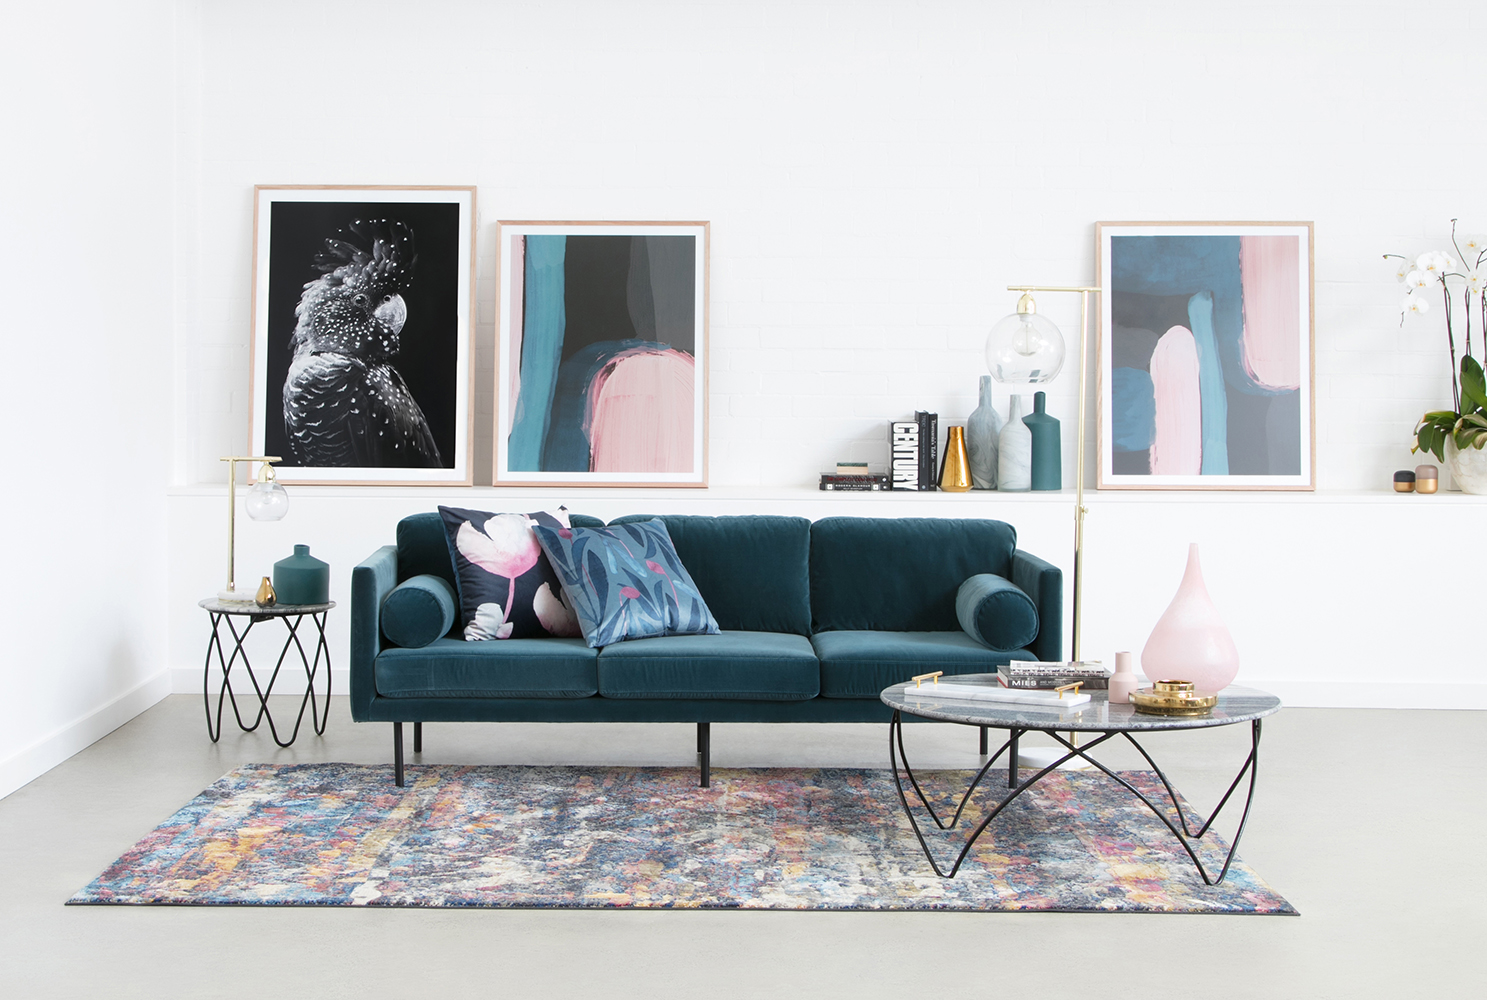 Spectre three-seater sofa in velvet, Hermon coffee and side tables